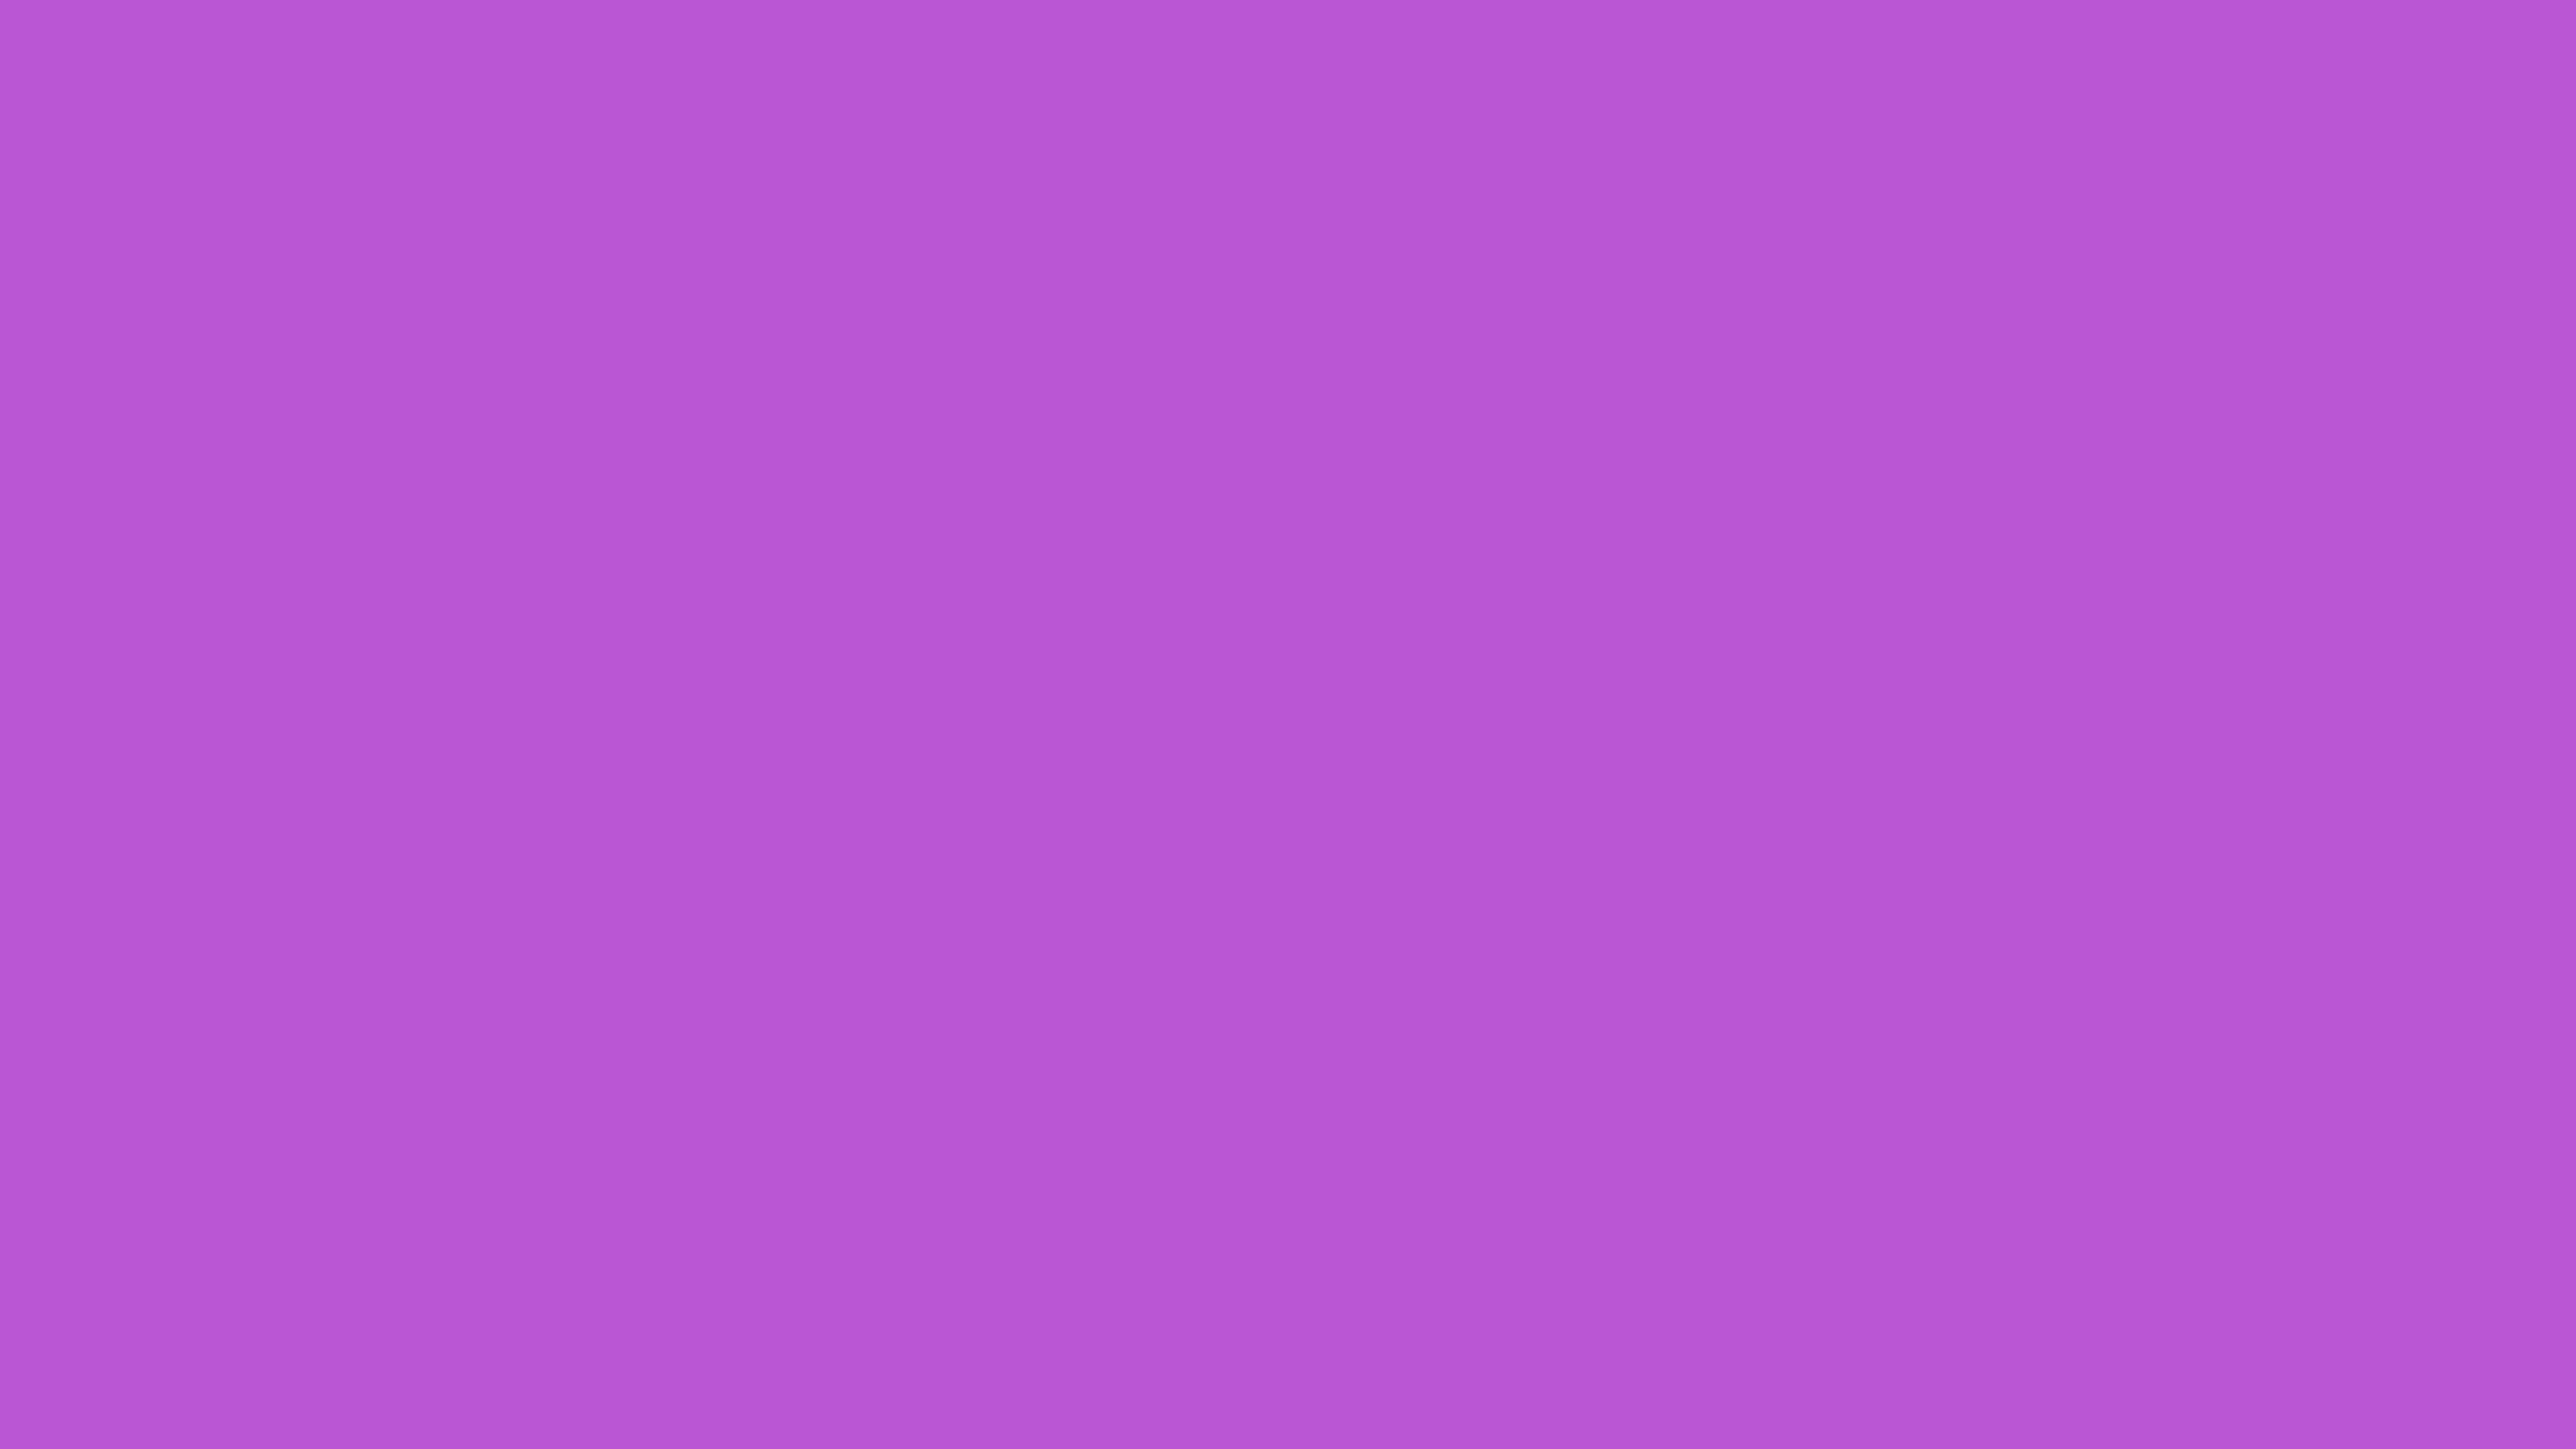 3840x2160 Medium Orchid Solid Color Background